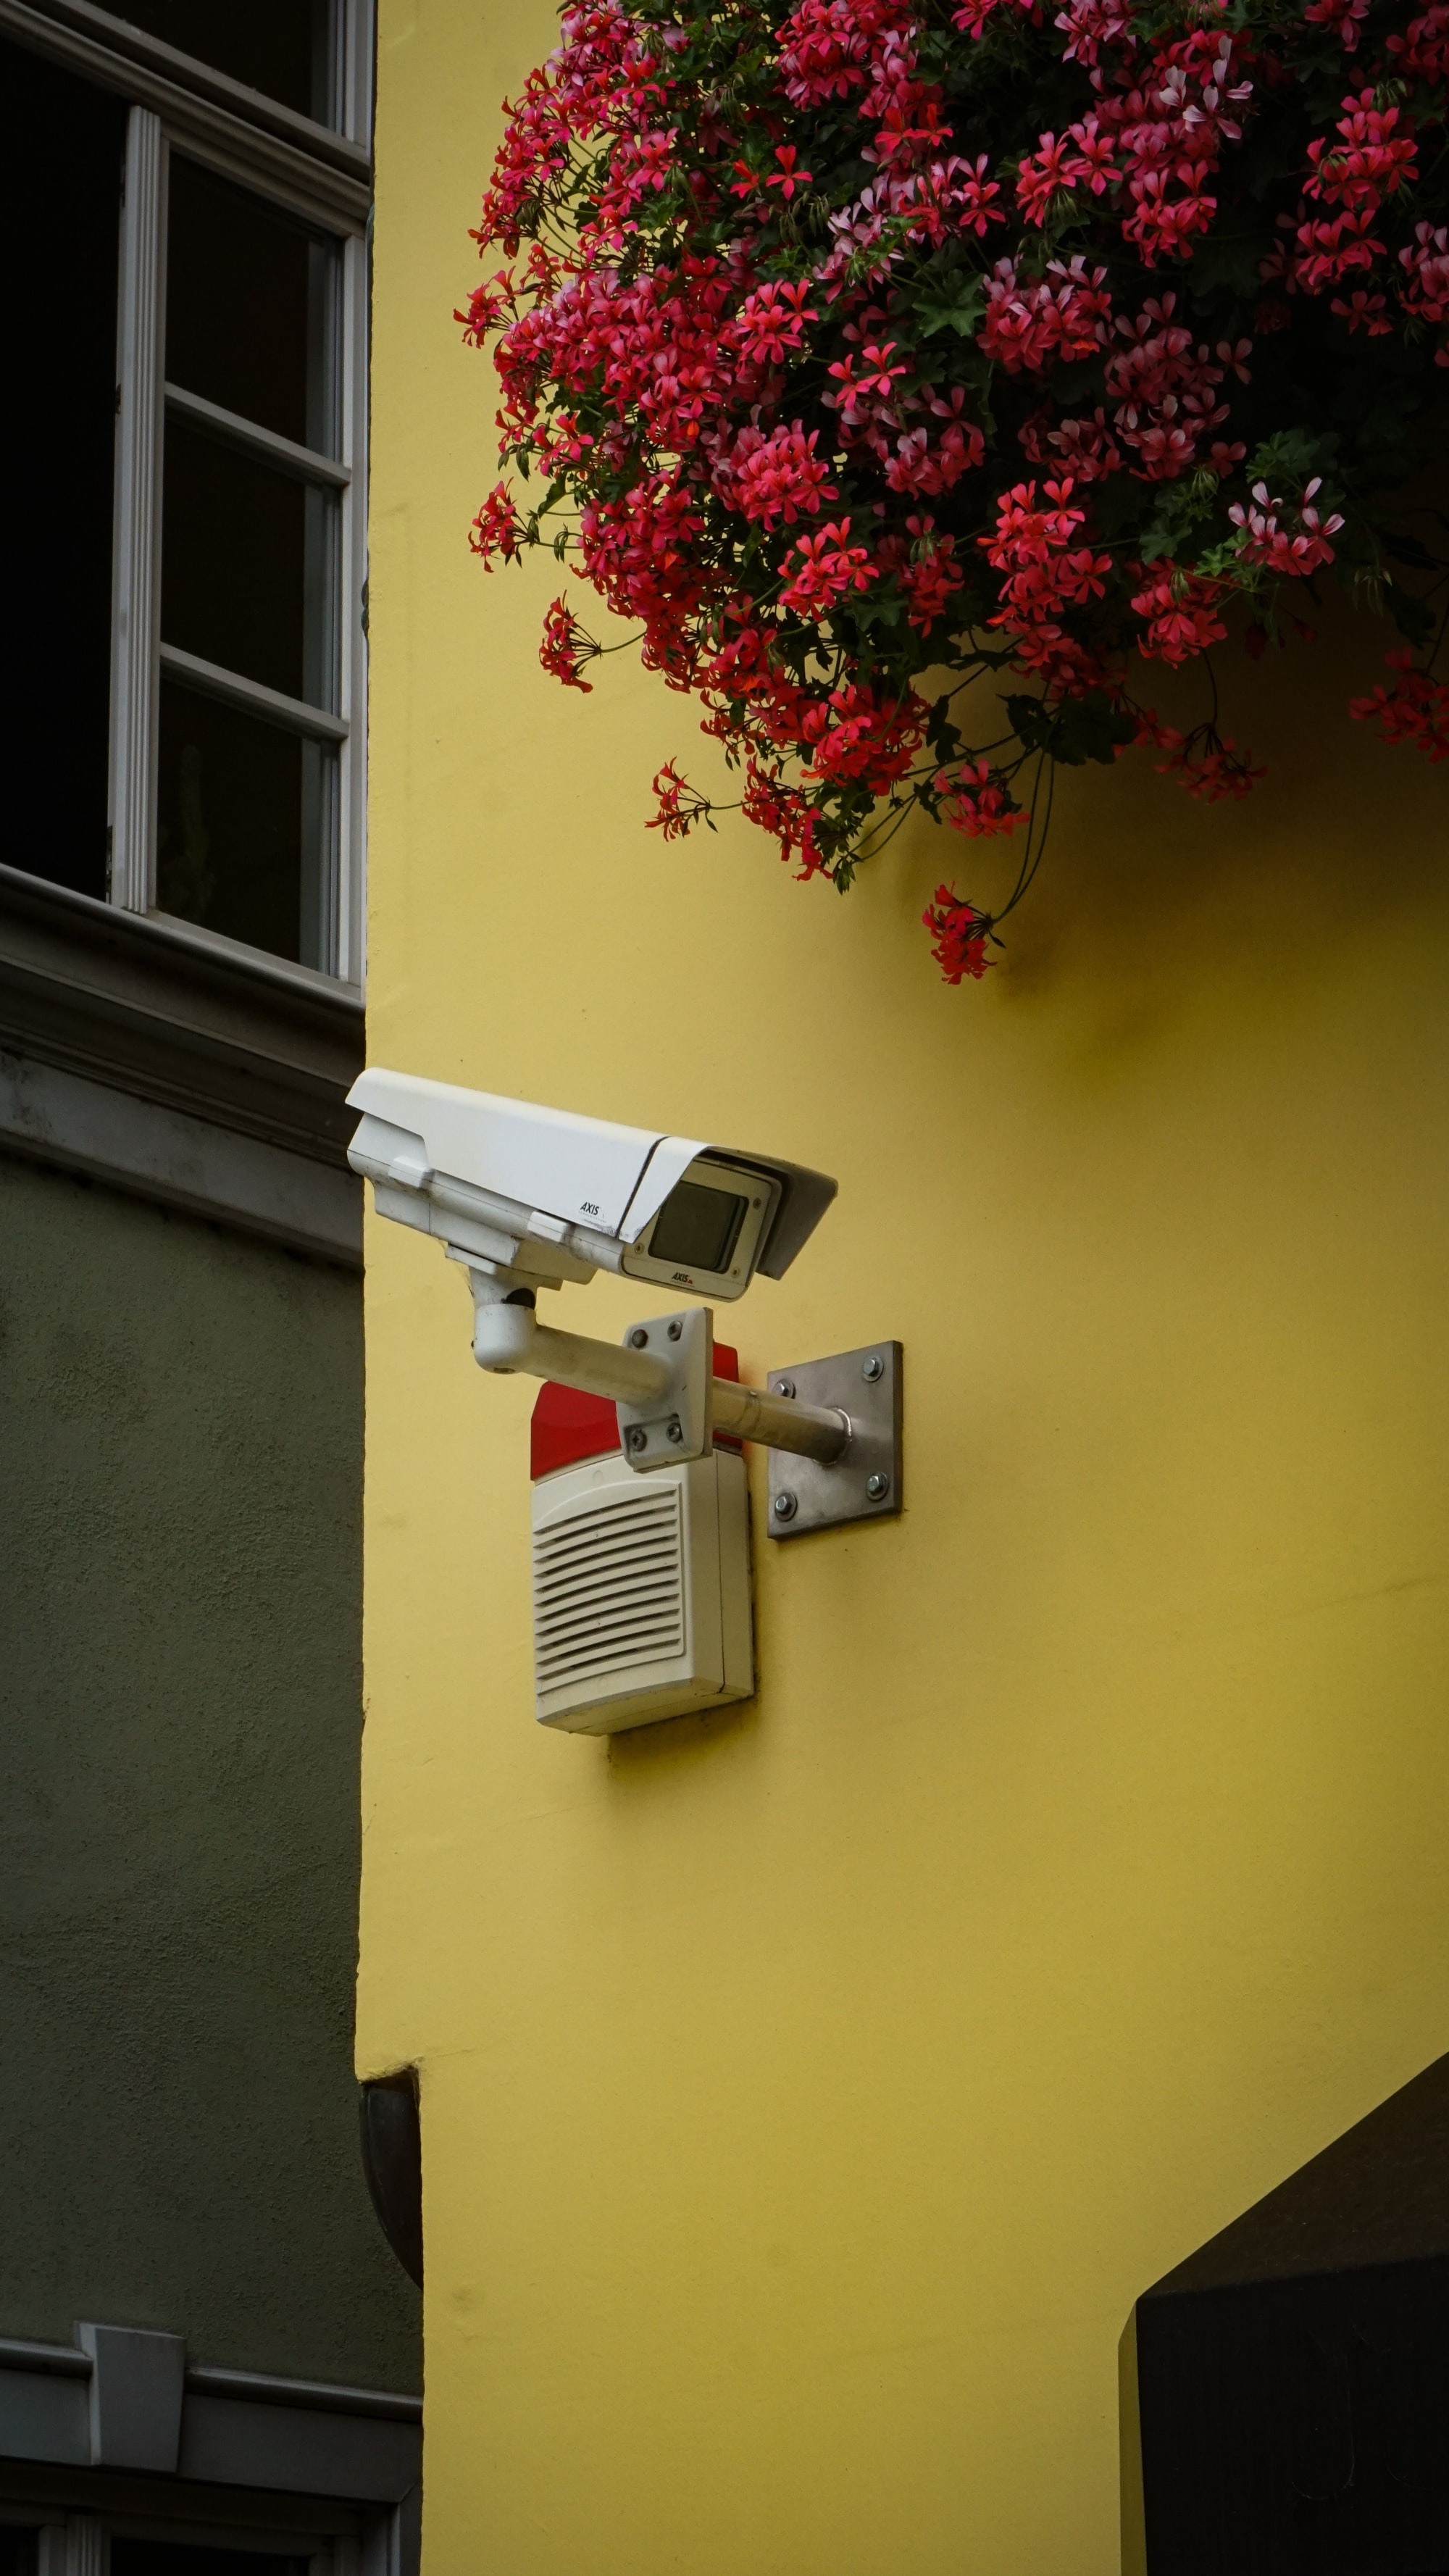 3. Security Systems & Cameras